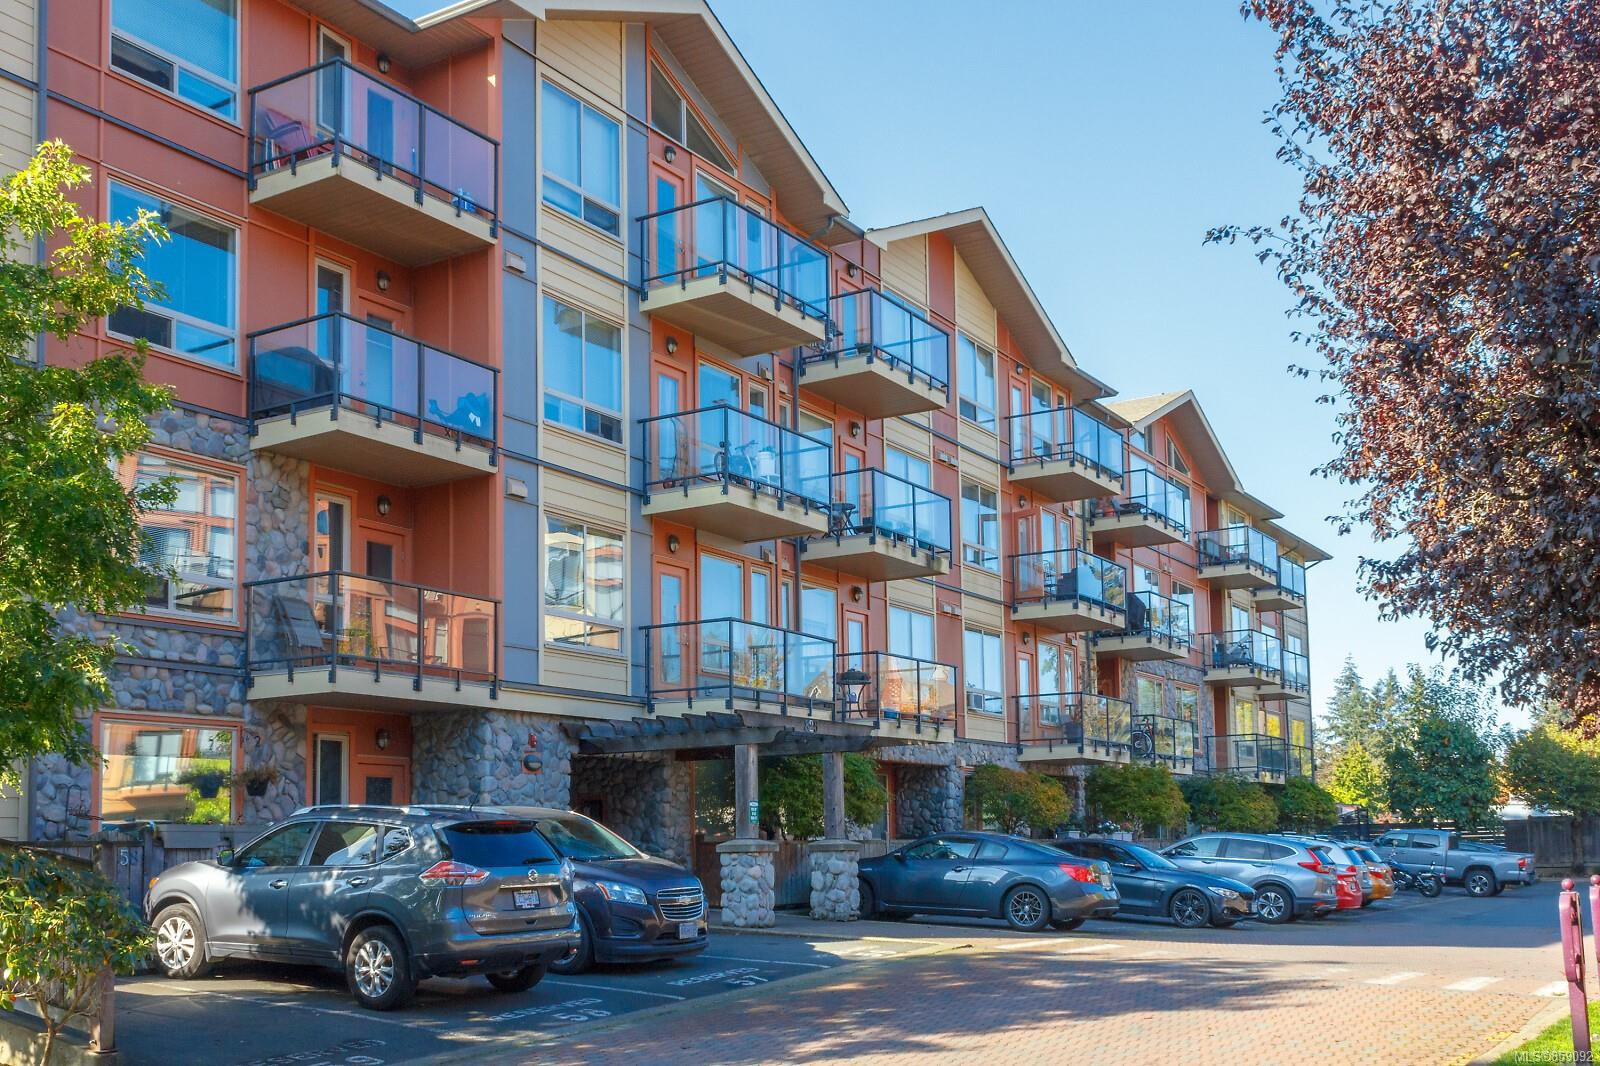 Main Photo: 301 825 Goldstream Ave in : La Goldstream Condo for sale (Langford)  : MLS®# 859092